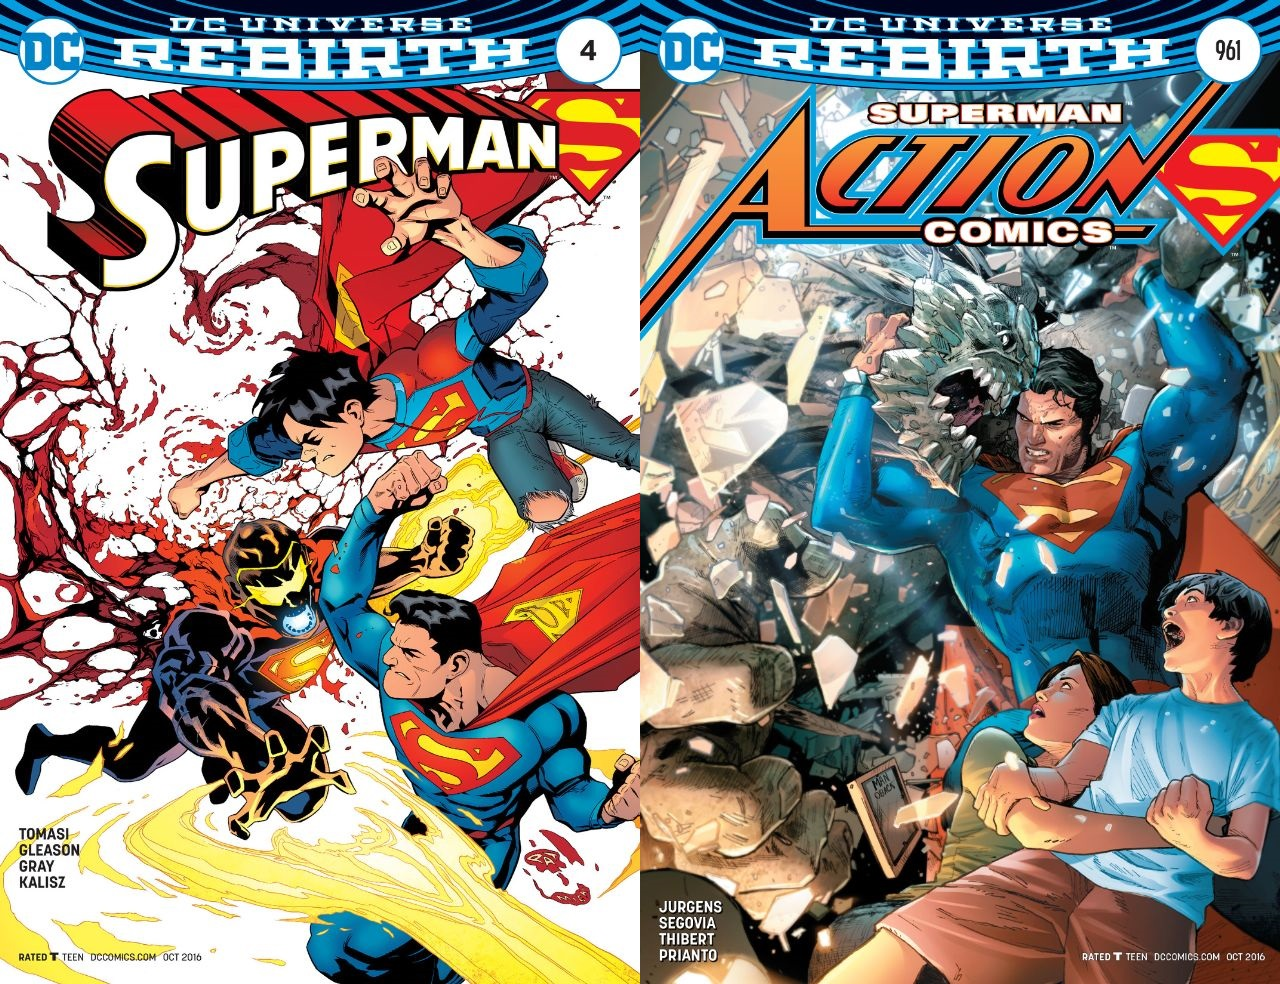 Rebirth: Superman 4 and Action Comics 961